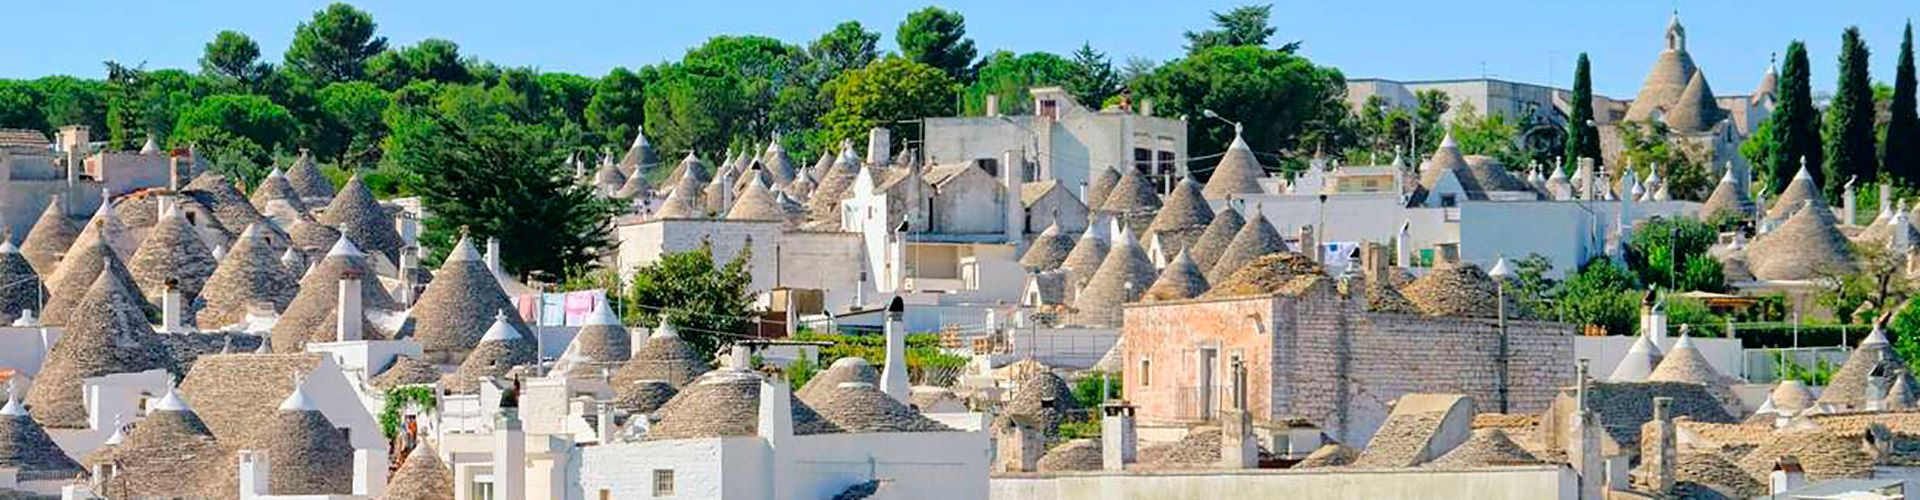 1920x500-town-of-alberobello.jpg